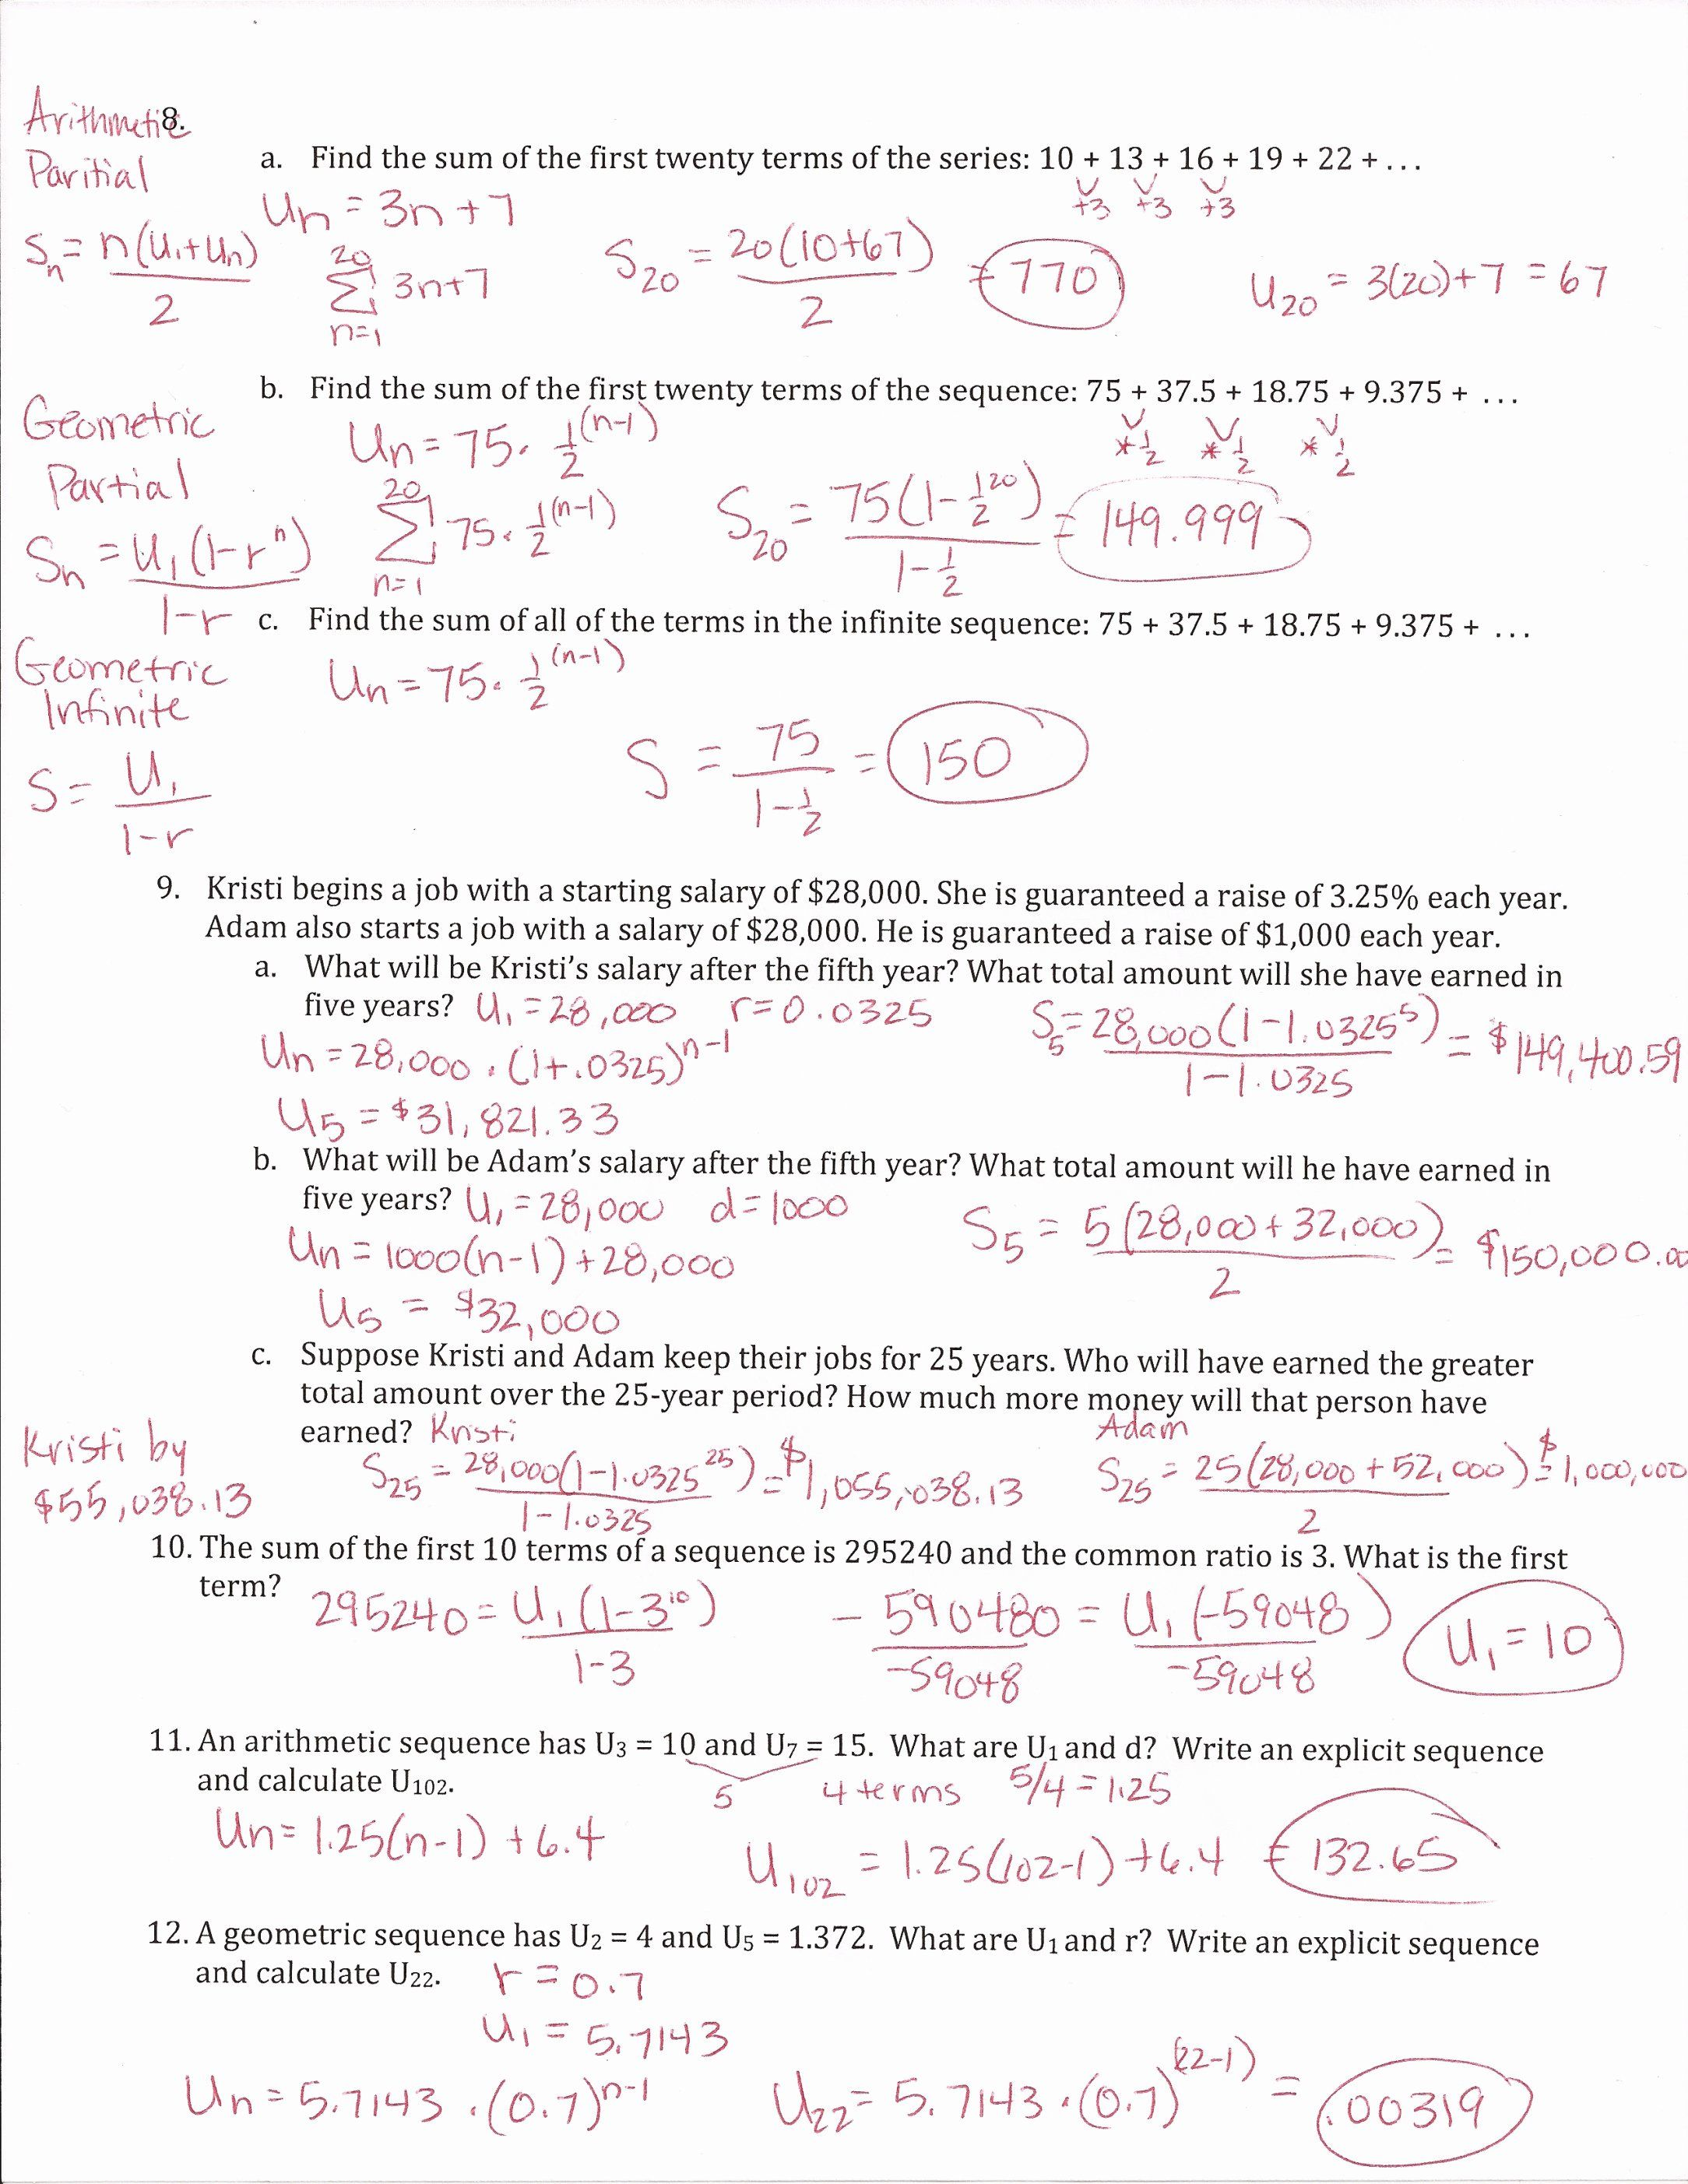 Arithmetic Sequence Worksheet Answers Fresh Arithmetic Sequences The Nth Term Worksheet Edplace In 2020 Arithmetic Sequences Geometric Sequences Sequencing Worksheets